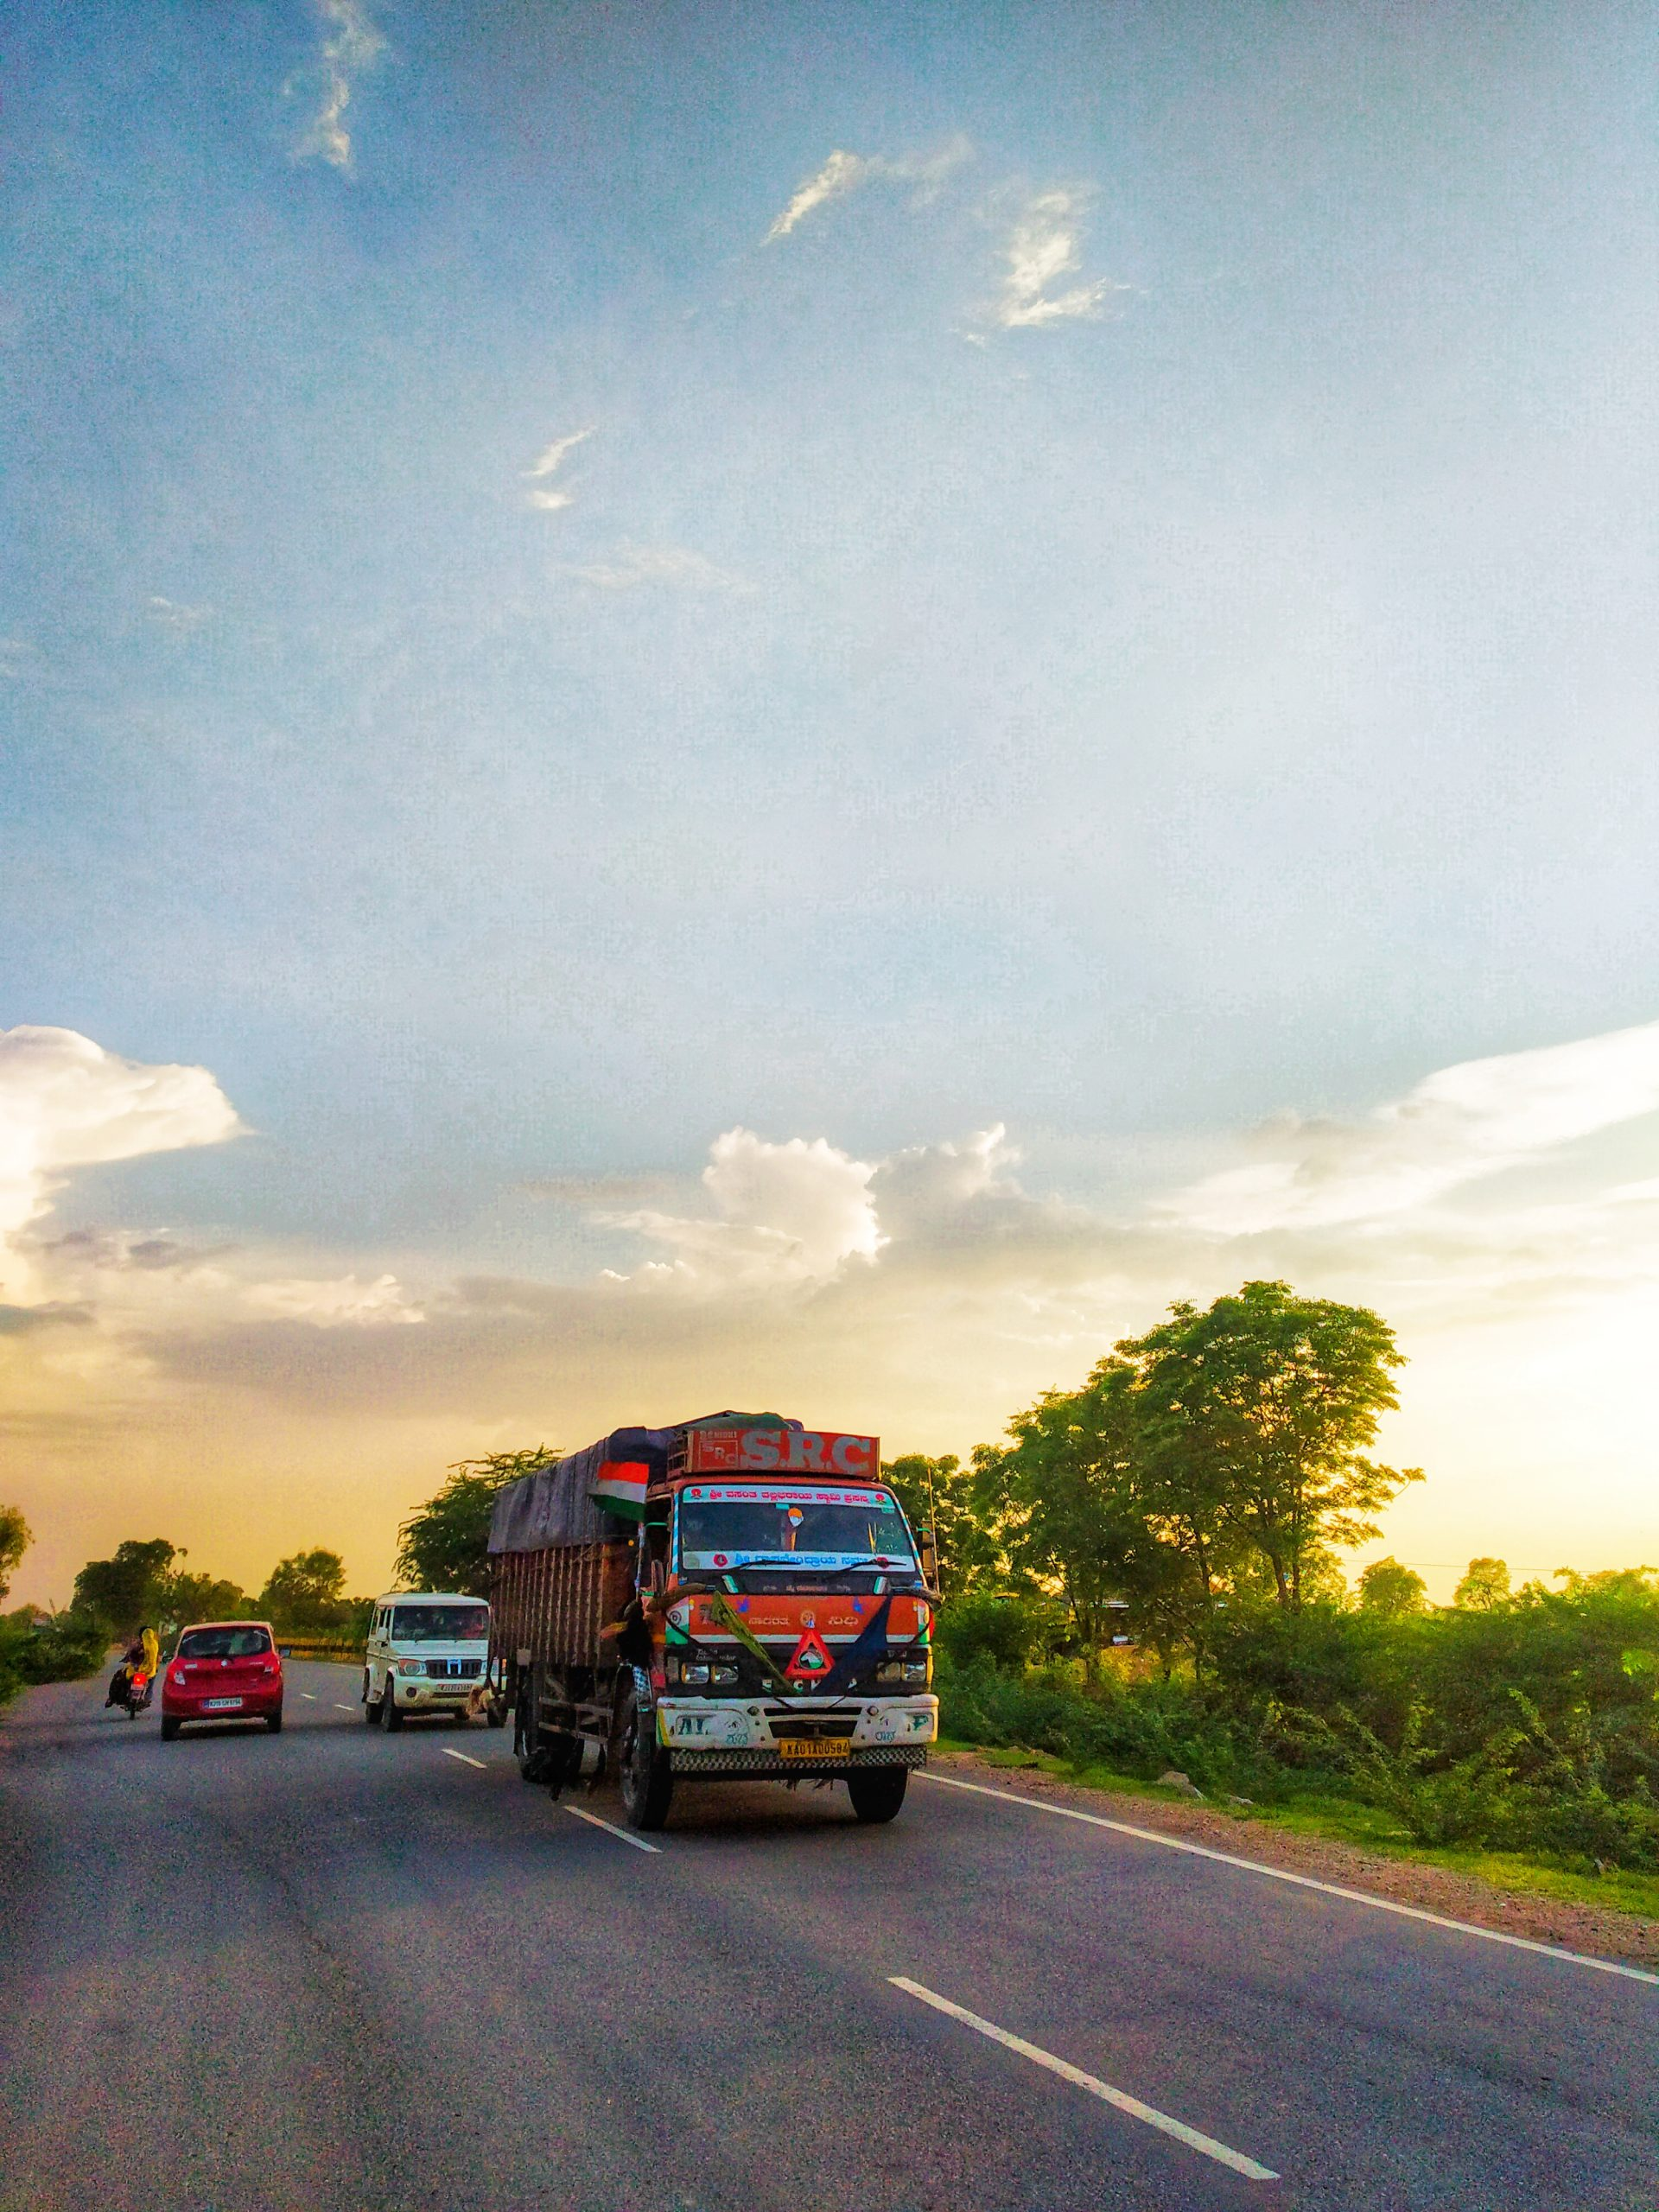 Vehicles on a highway in evening.